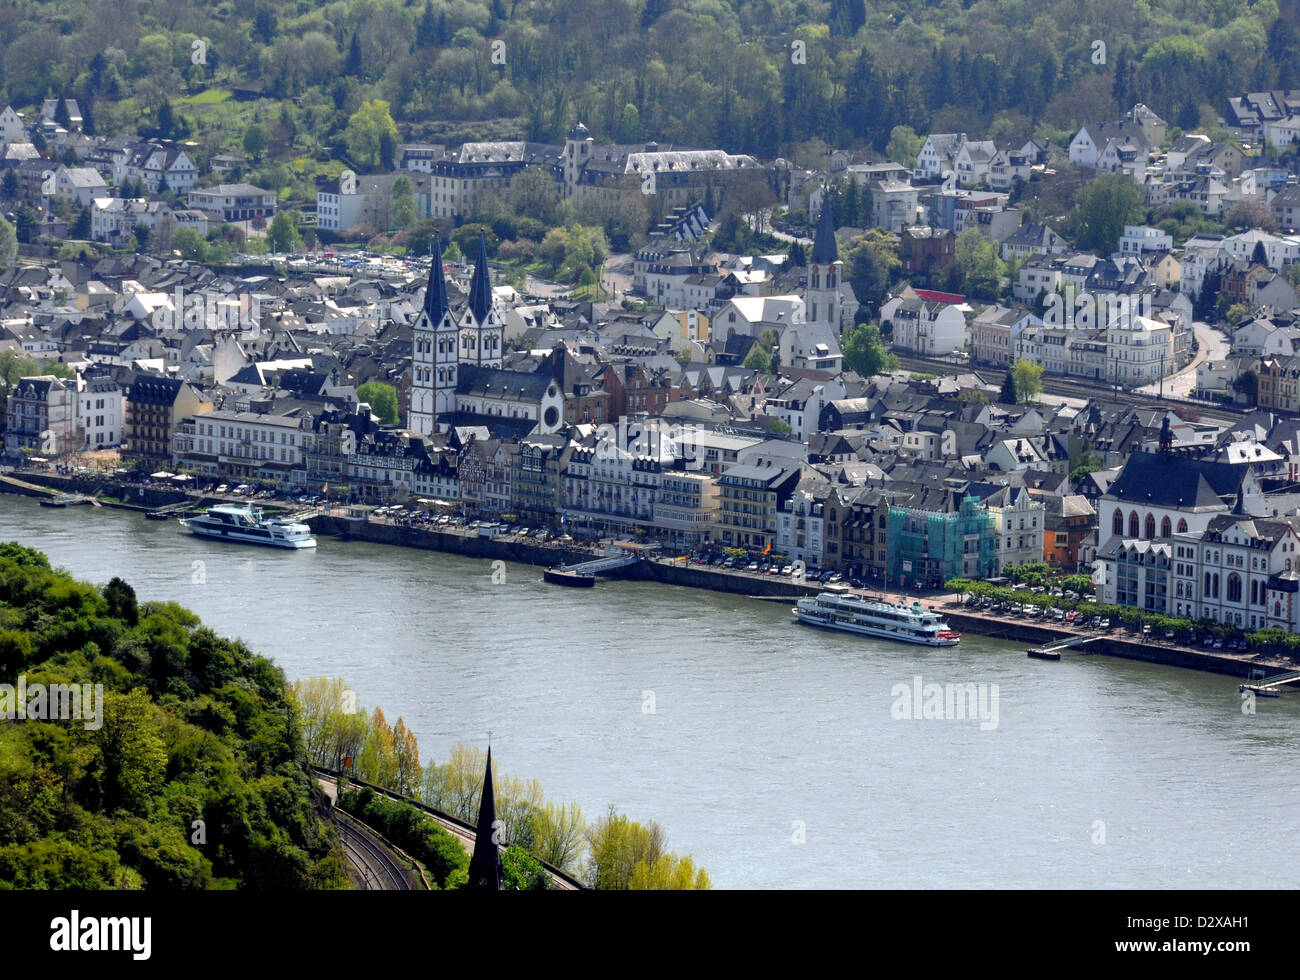 Rhine River At Boppard Stock Photos & Rhine River At ...